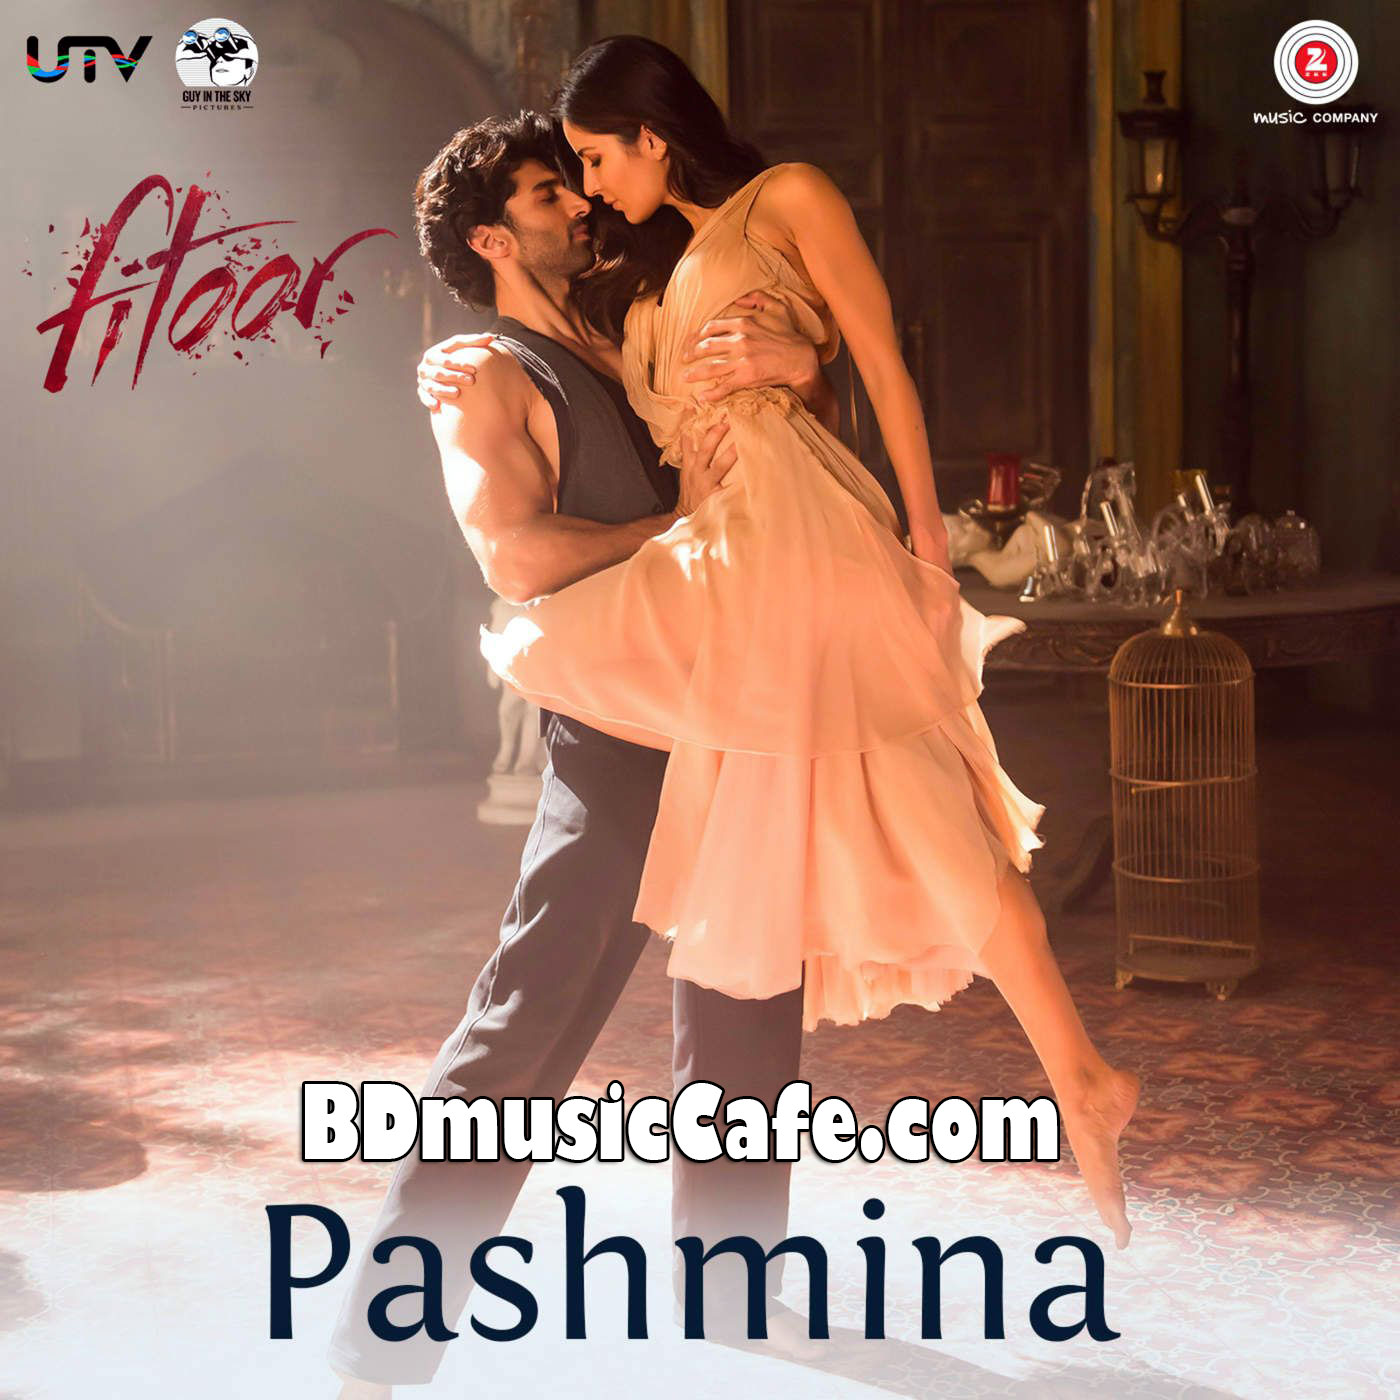 ... Mp3 Song Fitoor Movie, Pashmina Full Mp3 Song Hindi Fitoor Movie